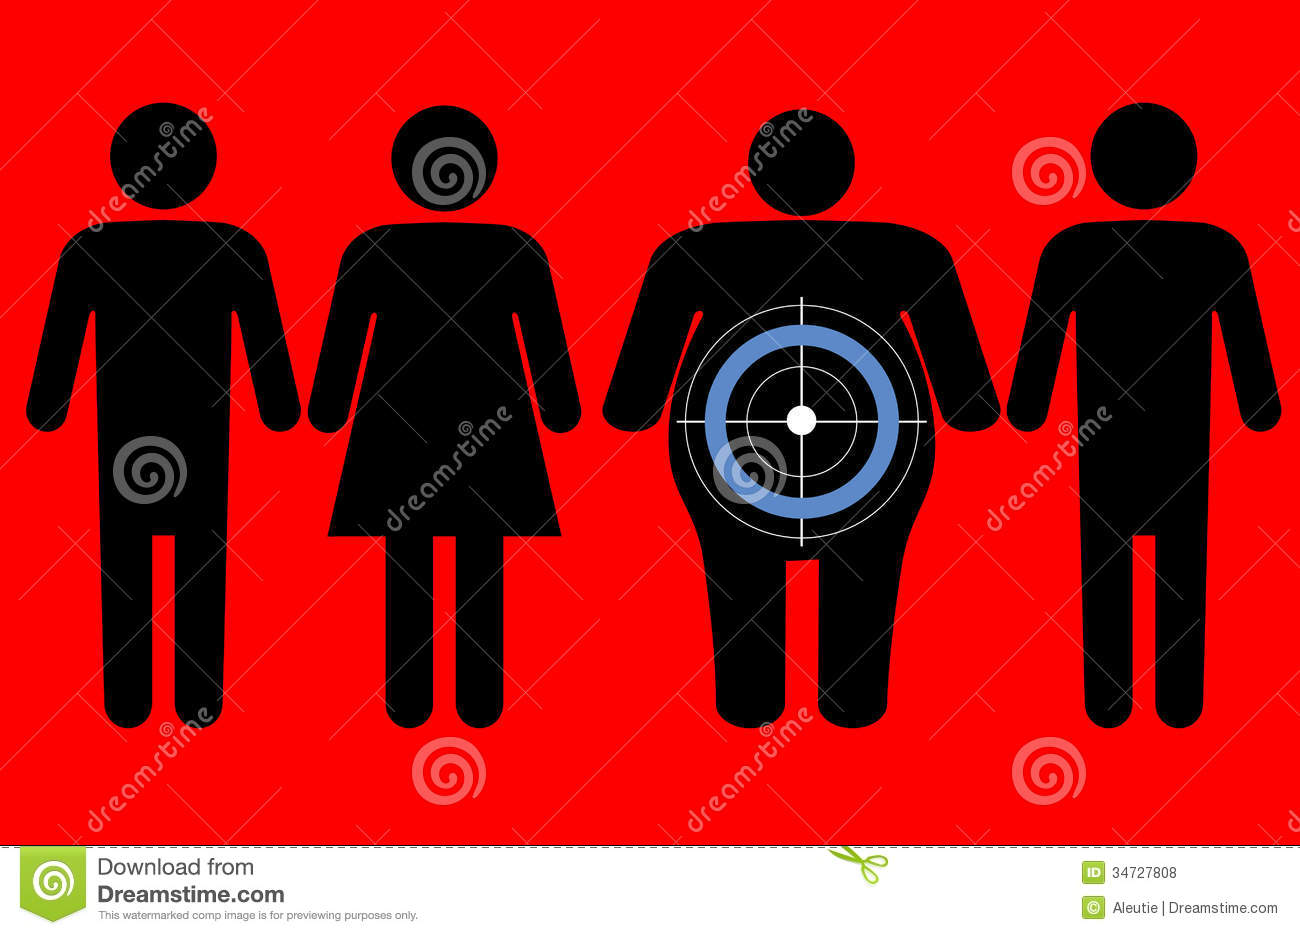 Diabetes targeting overweight people royalty free stock photos image